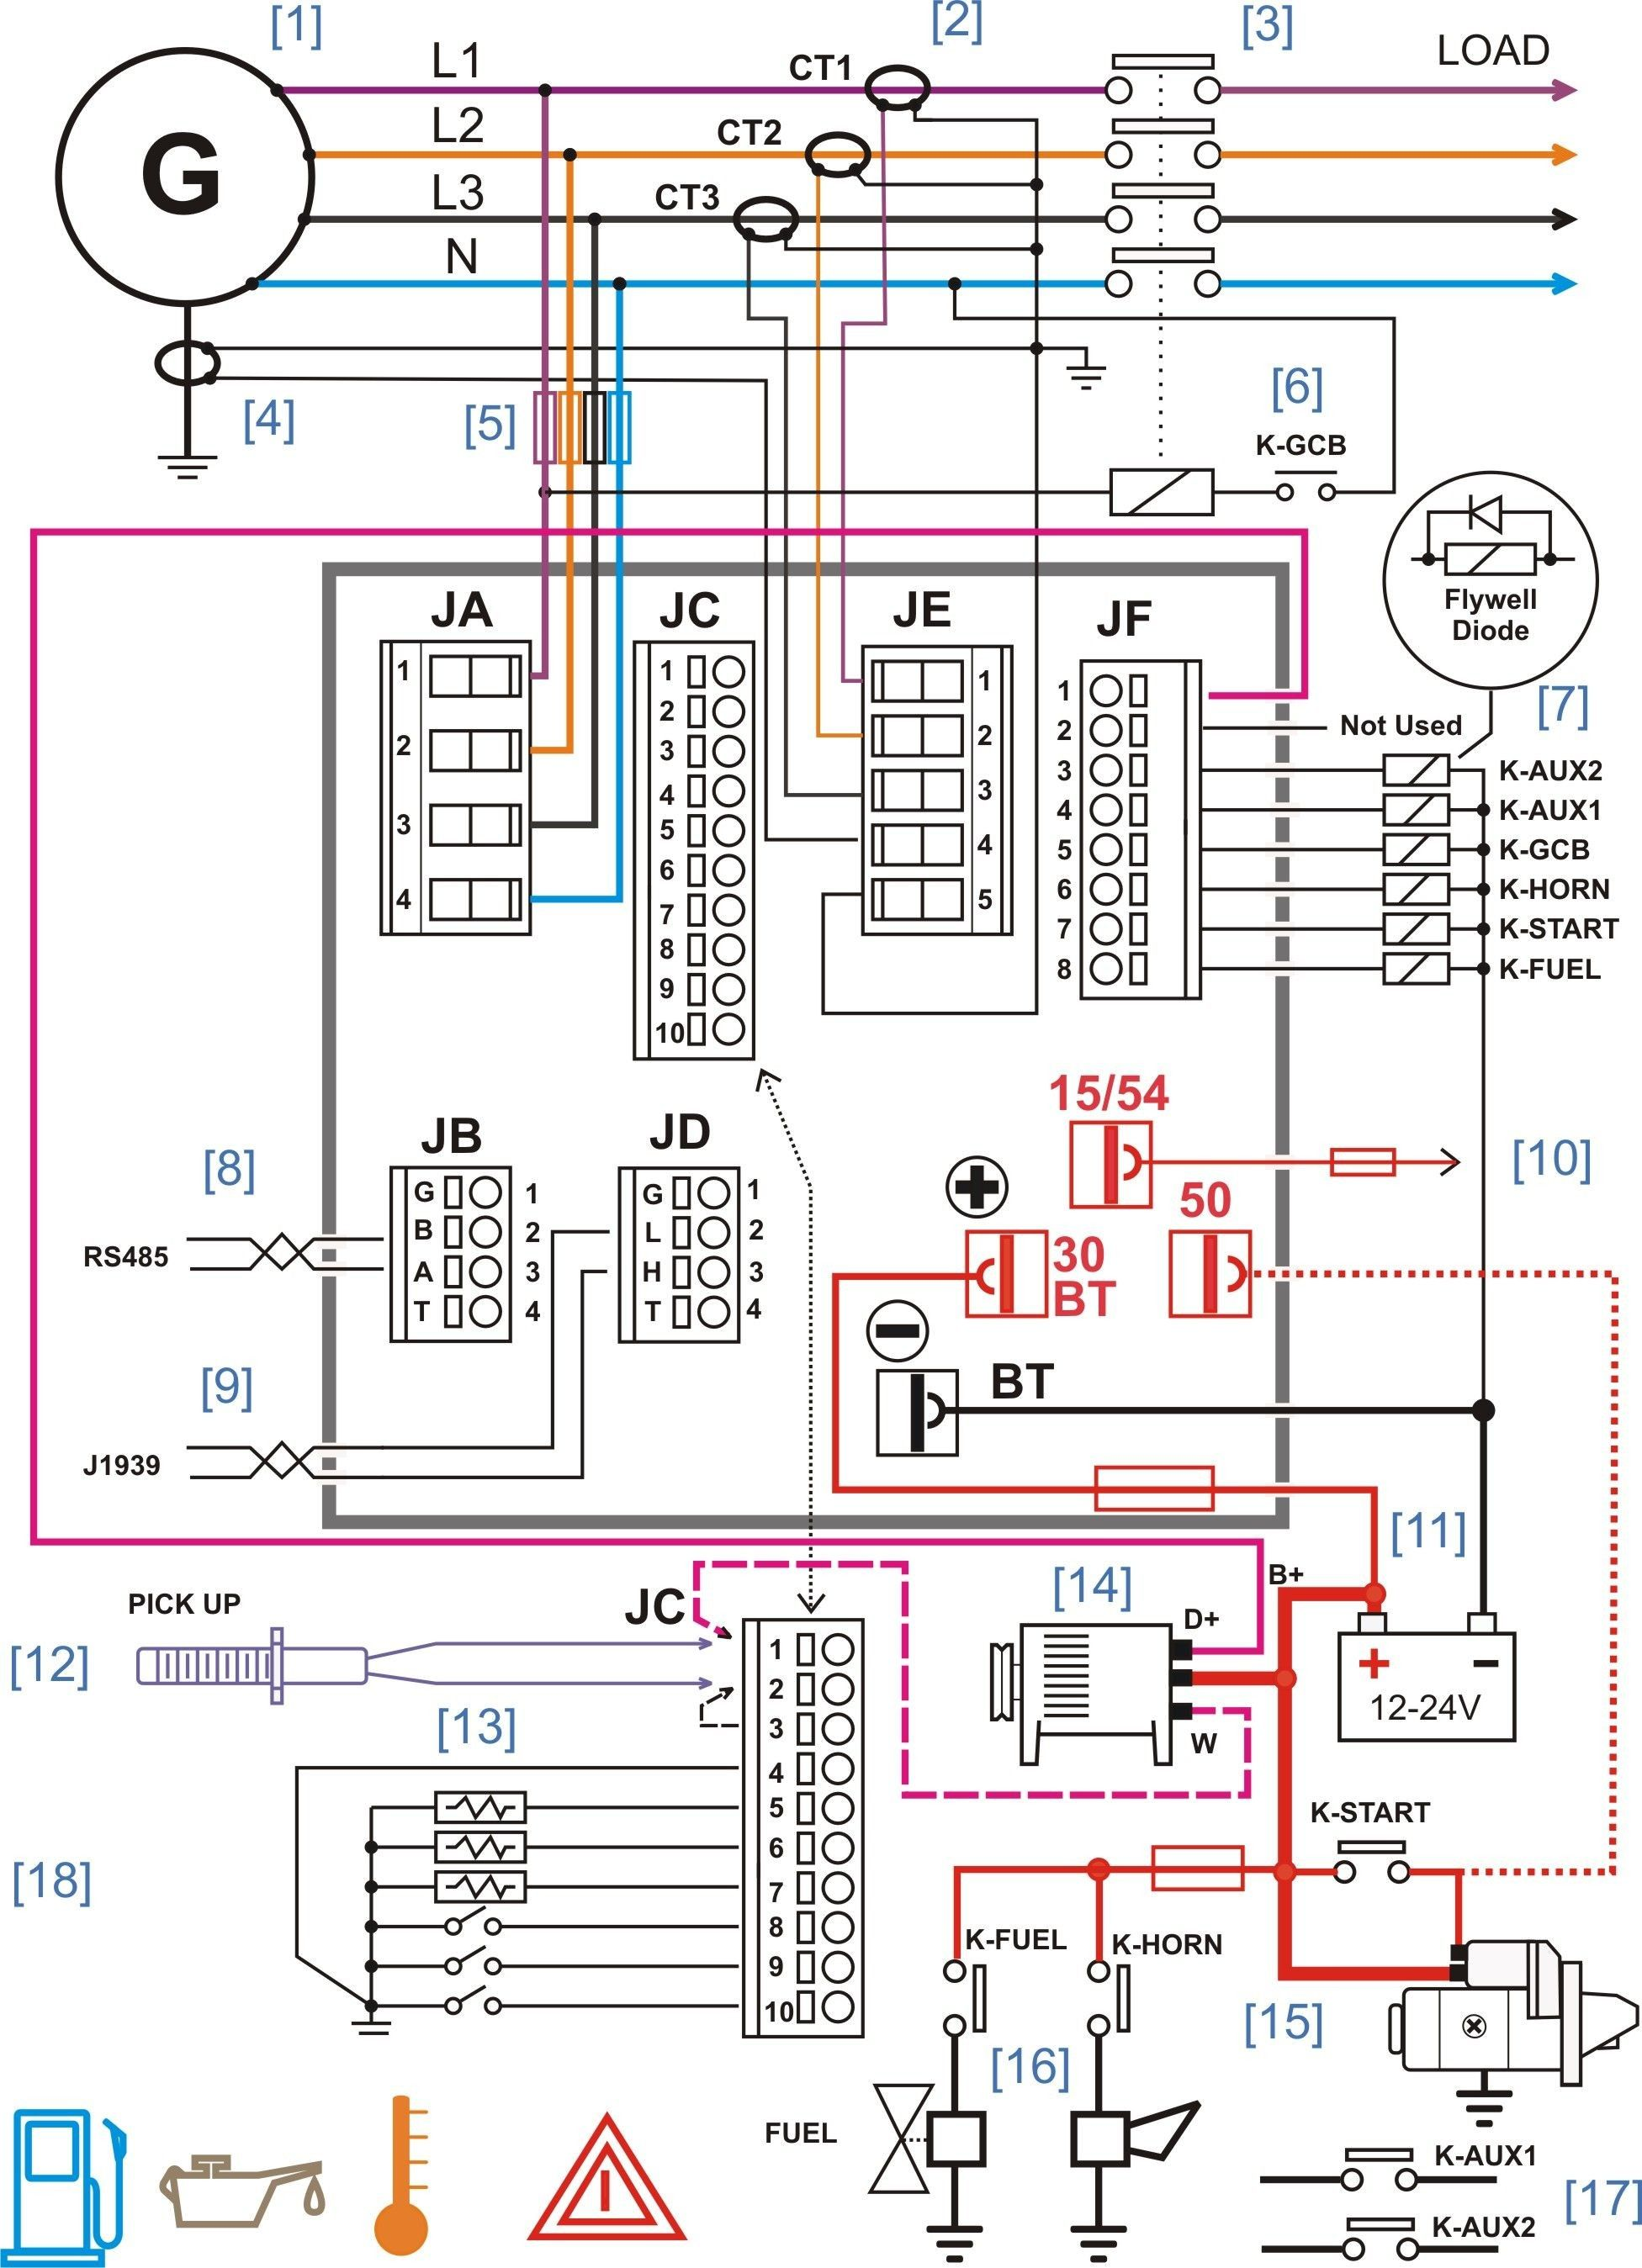 generator wiring diagram and electrical schematics pdf download in 2020 |  electrical circuit diagram, electrical wiring diagram, electrical diagram  pinterest